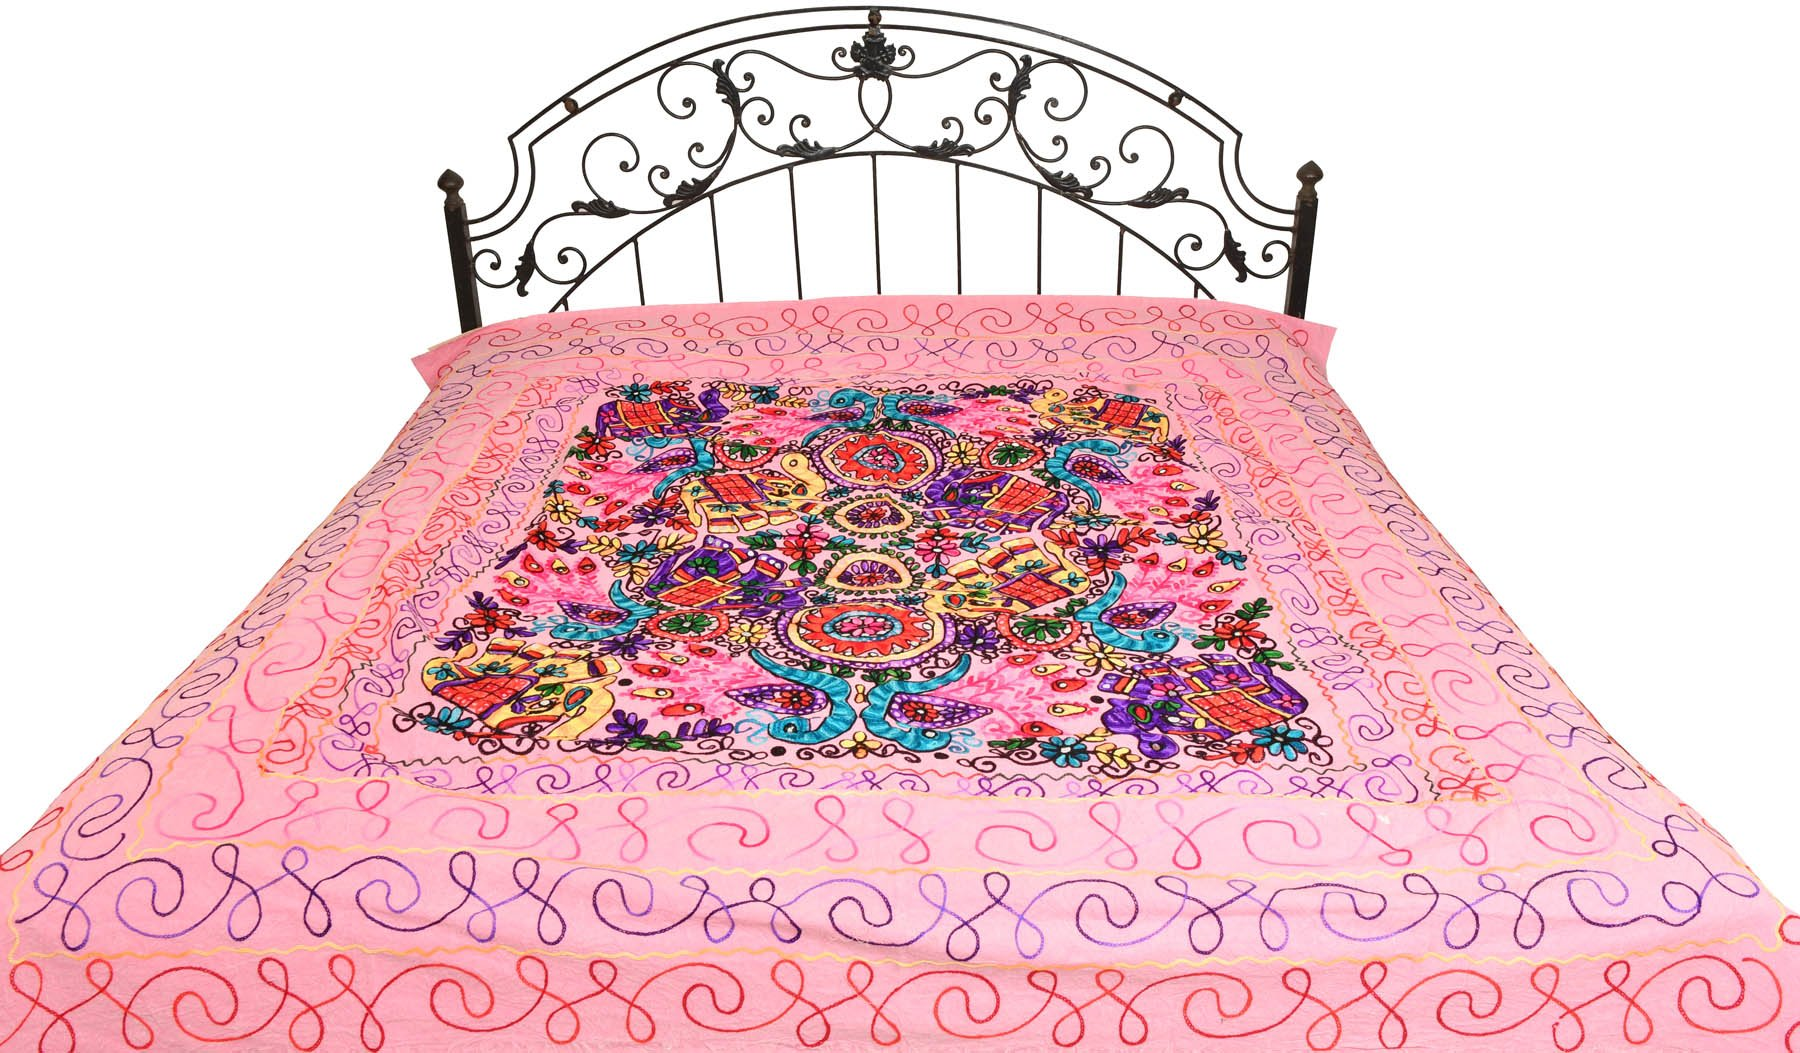 Bedspread from Gujarat with Embroidered Animals - Pure Cotton - Color Prism Pink Color by Exotic India (Image #1)